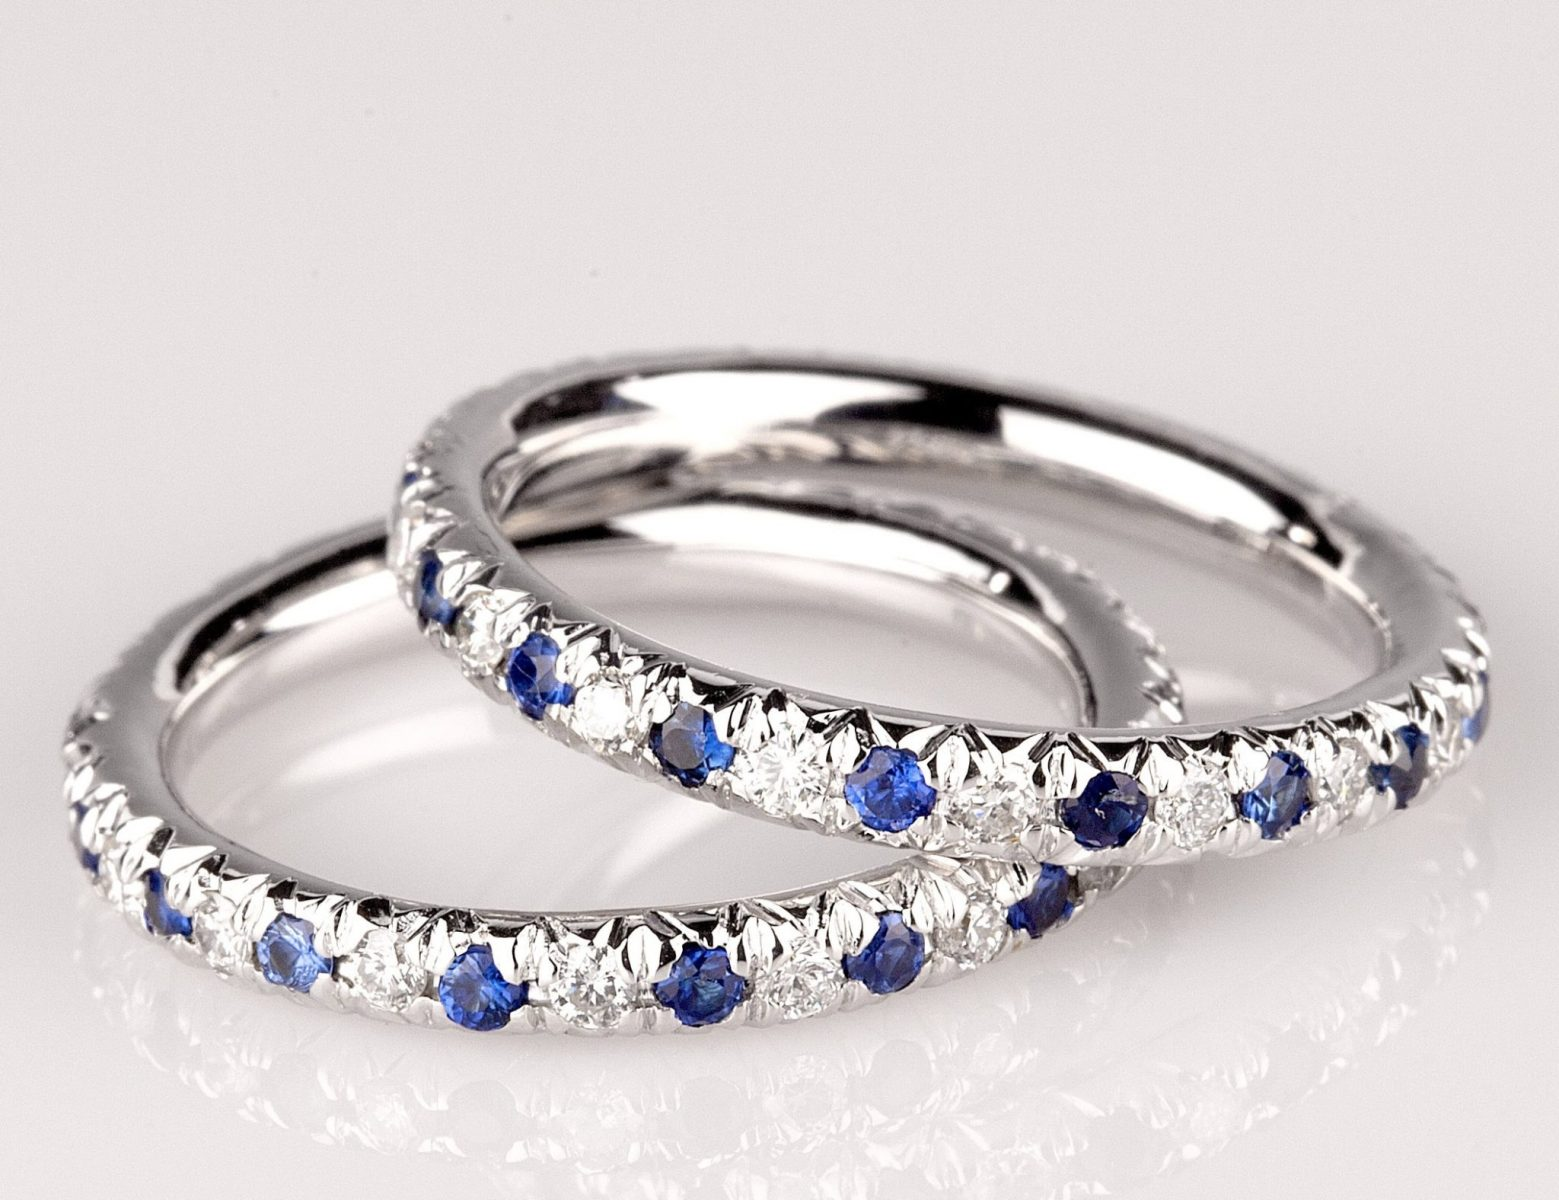 and blue sapphire products ring cz cocktail cubic shape zirconia bands clear round s faux diamond kerra band eternity cut